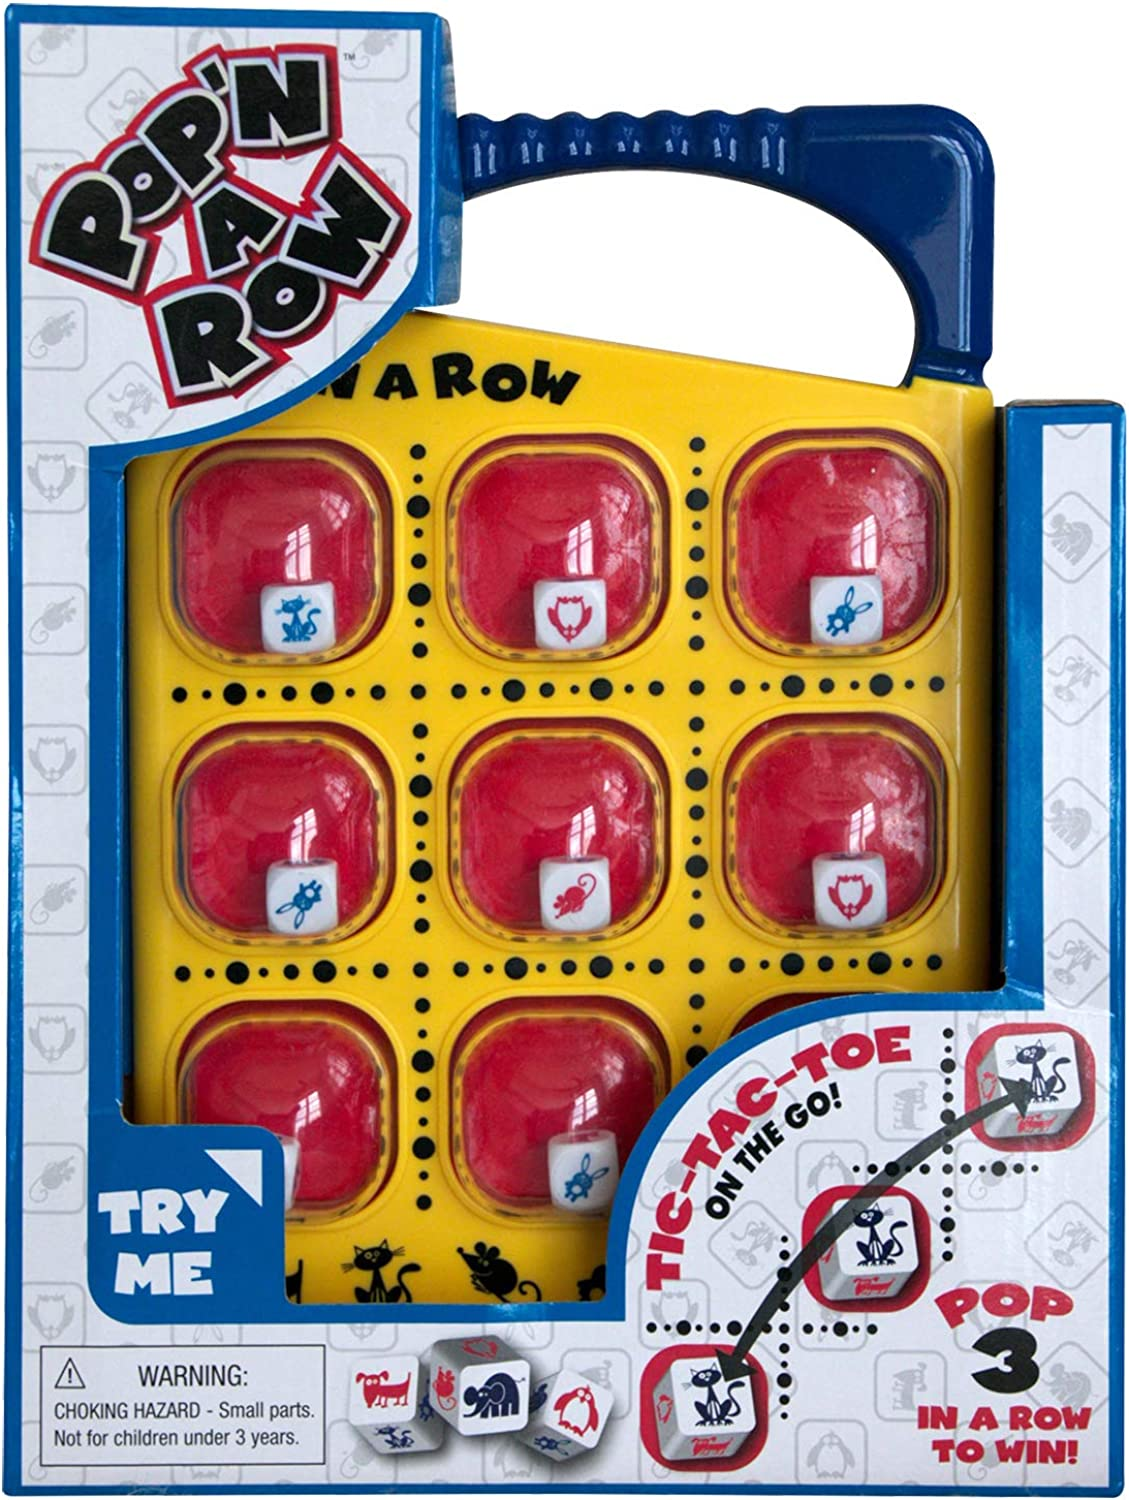 Tic Tac Toe Kids Game, Pop'n a ROW From Reeve + Jones, with Push and Pop Dicespinning Action, Portable Design with Builtin Carry Handle for Travel